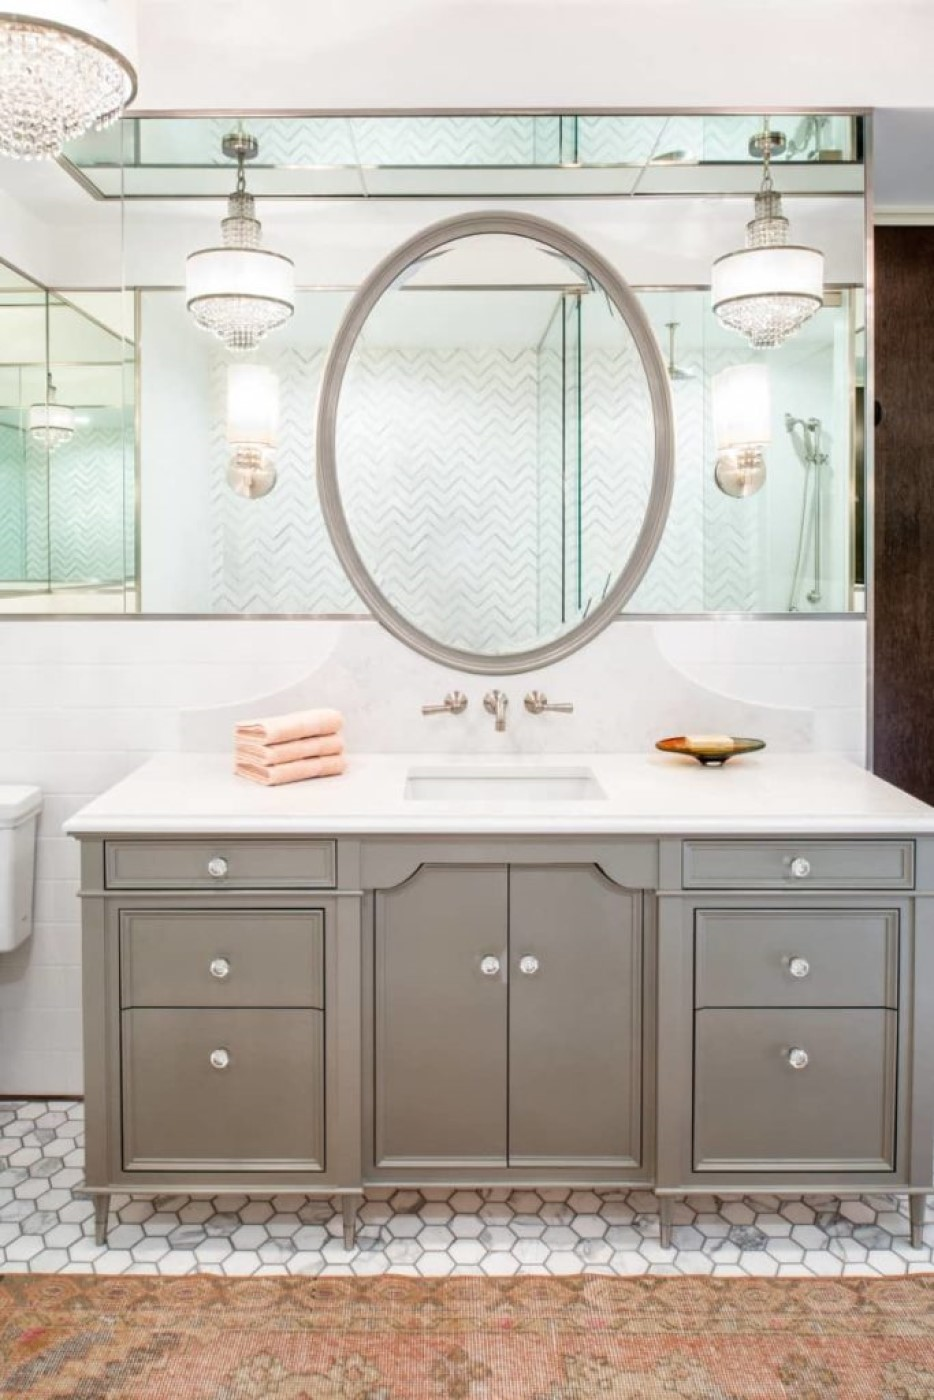 Start with an elegantly simple gray vanity with a white quartz counter atop a gray and white marble hex tiled floor. Add a gray-framed oval mirror mounted on a tall strip of mirrors framed by white stone, all under a mirrored ceiling. Finish off with crystal chandeliers. The result is a dazzling symphony of gray, white, and glass.